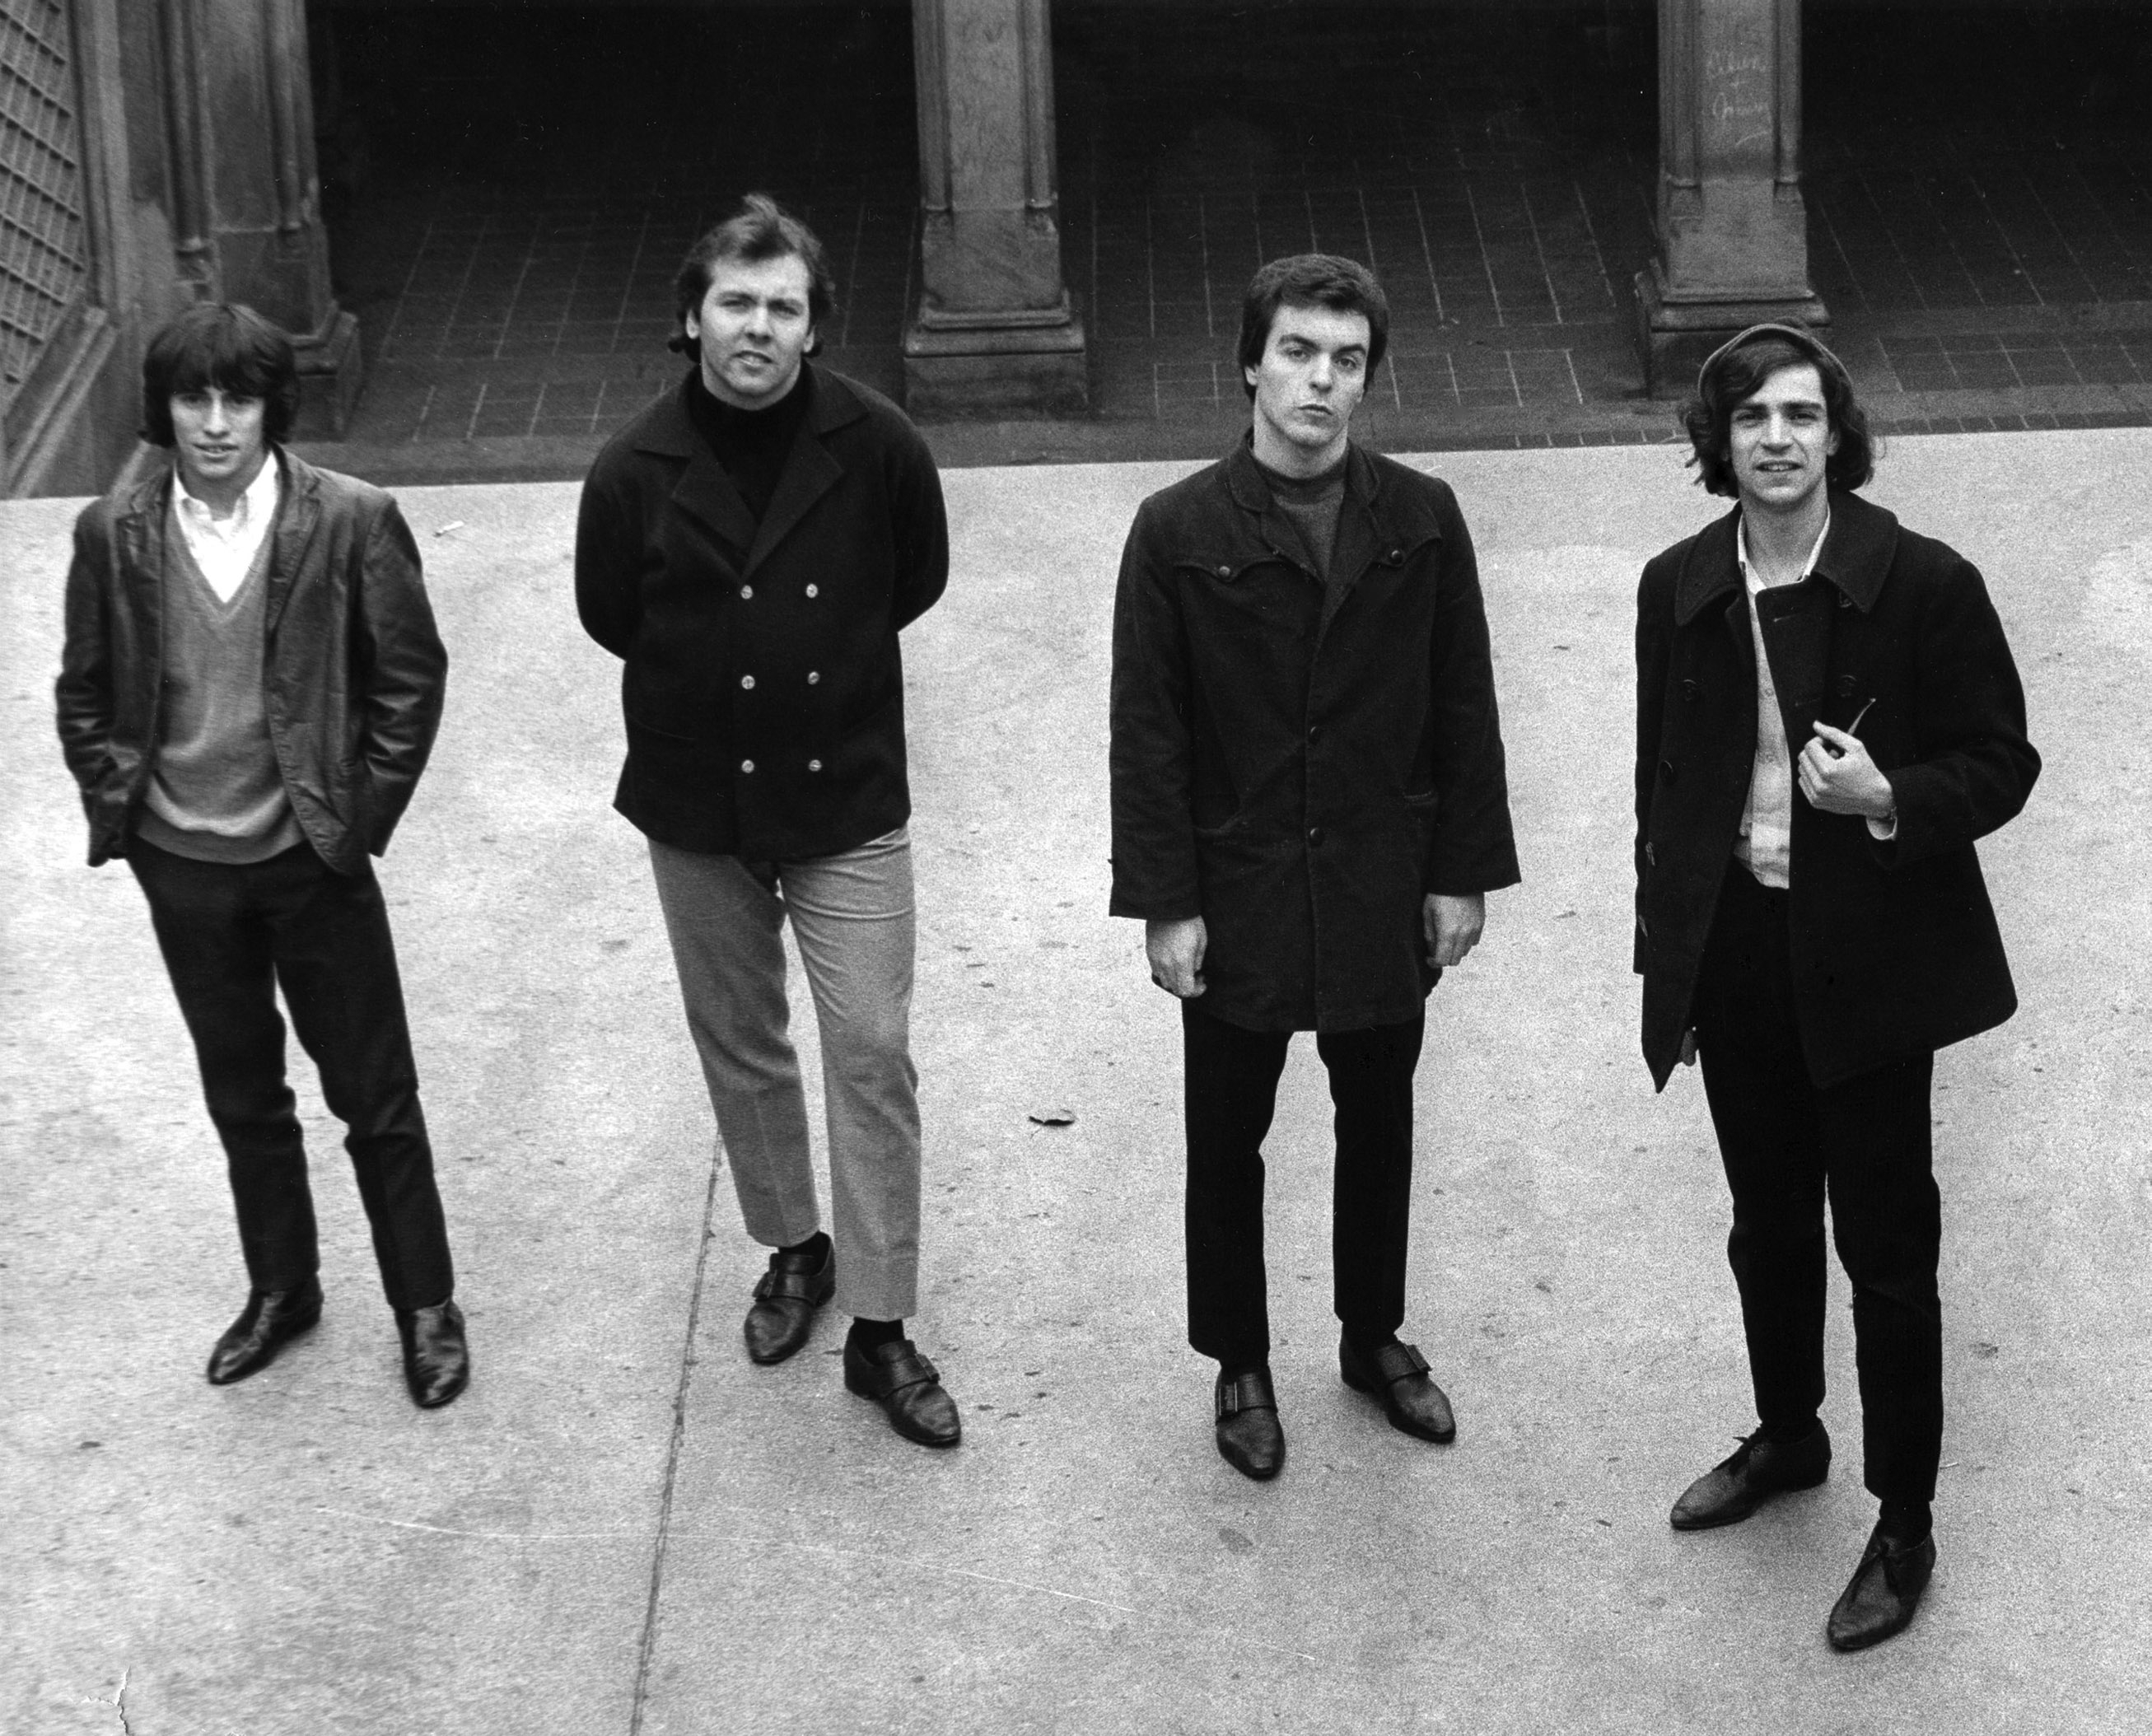 Music Review – The Rascals: Once Upon a Dream